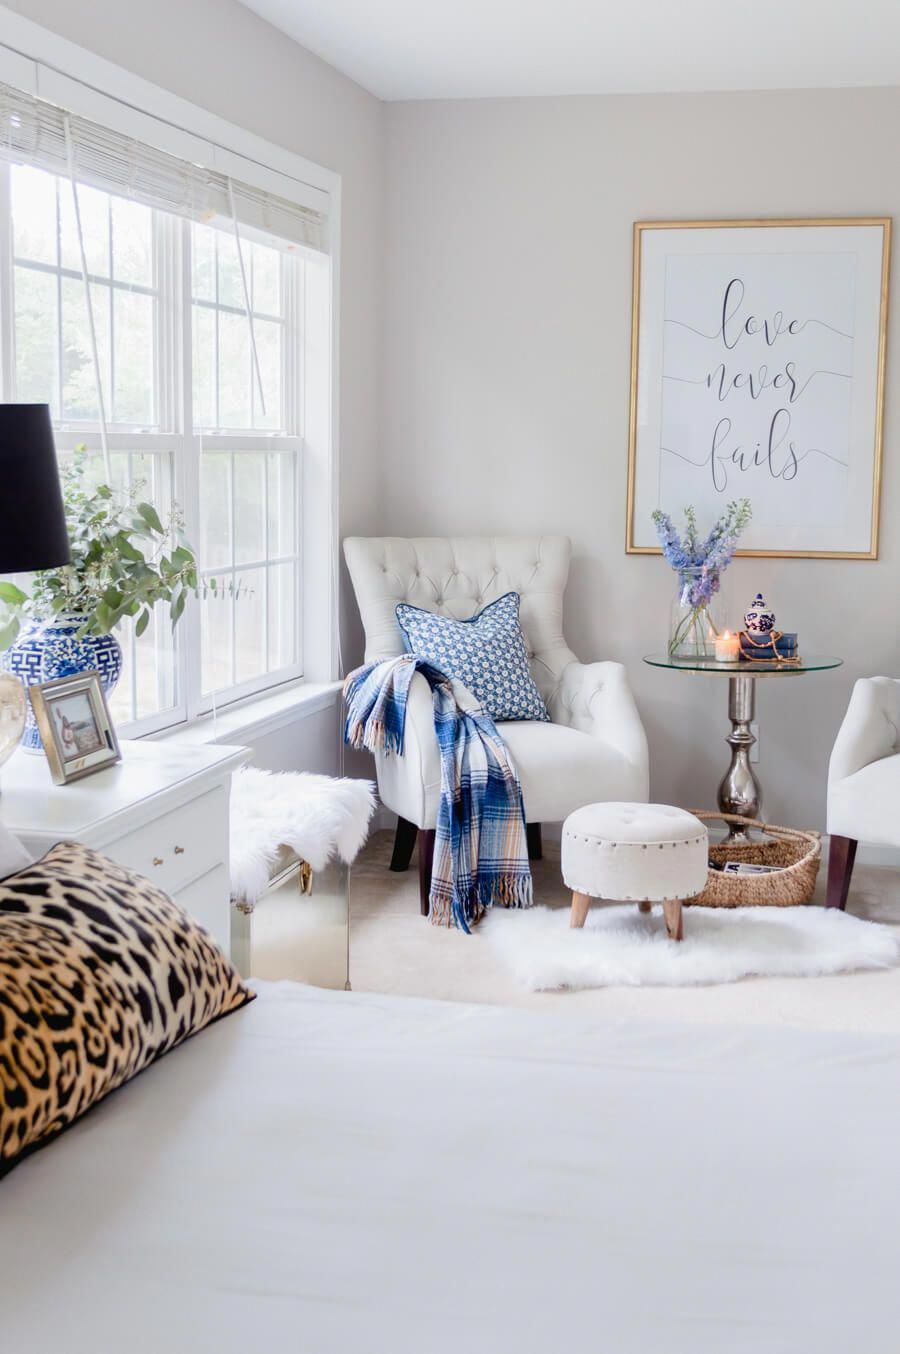 5 Easy Tips For A Cozy Master Bedroom Sitting Area The Home I